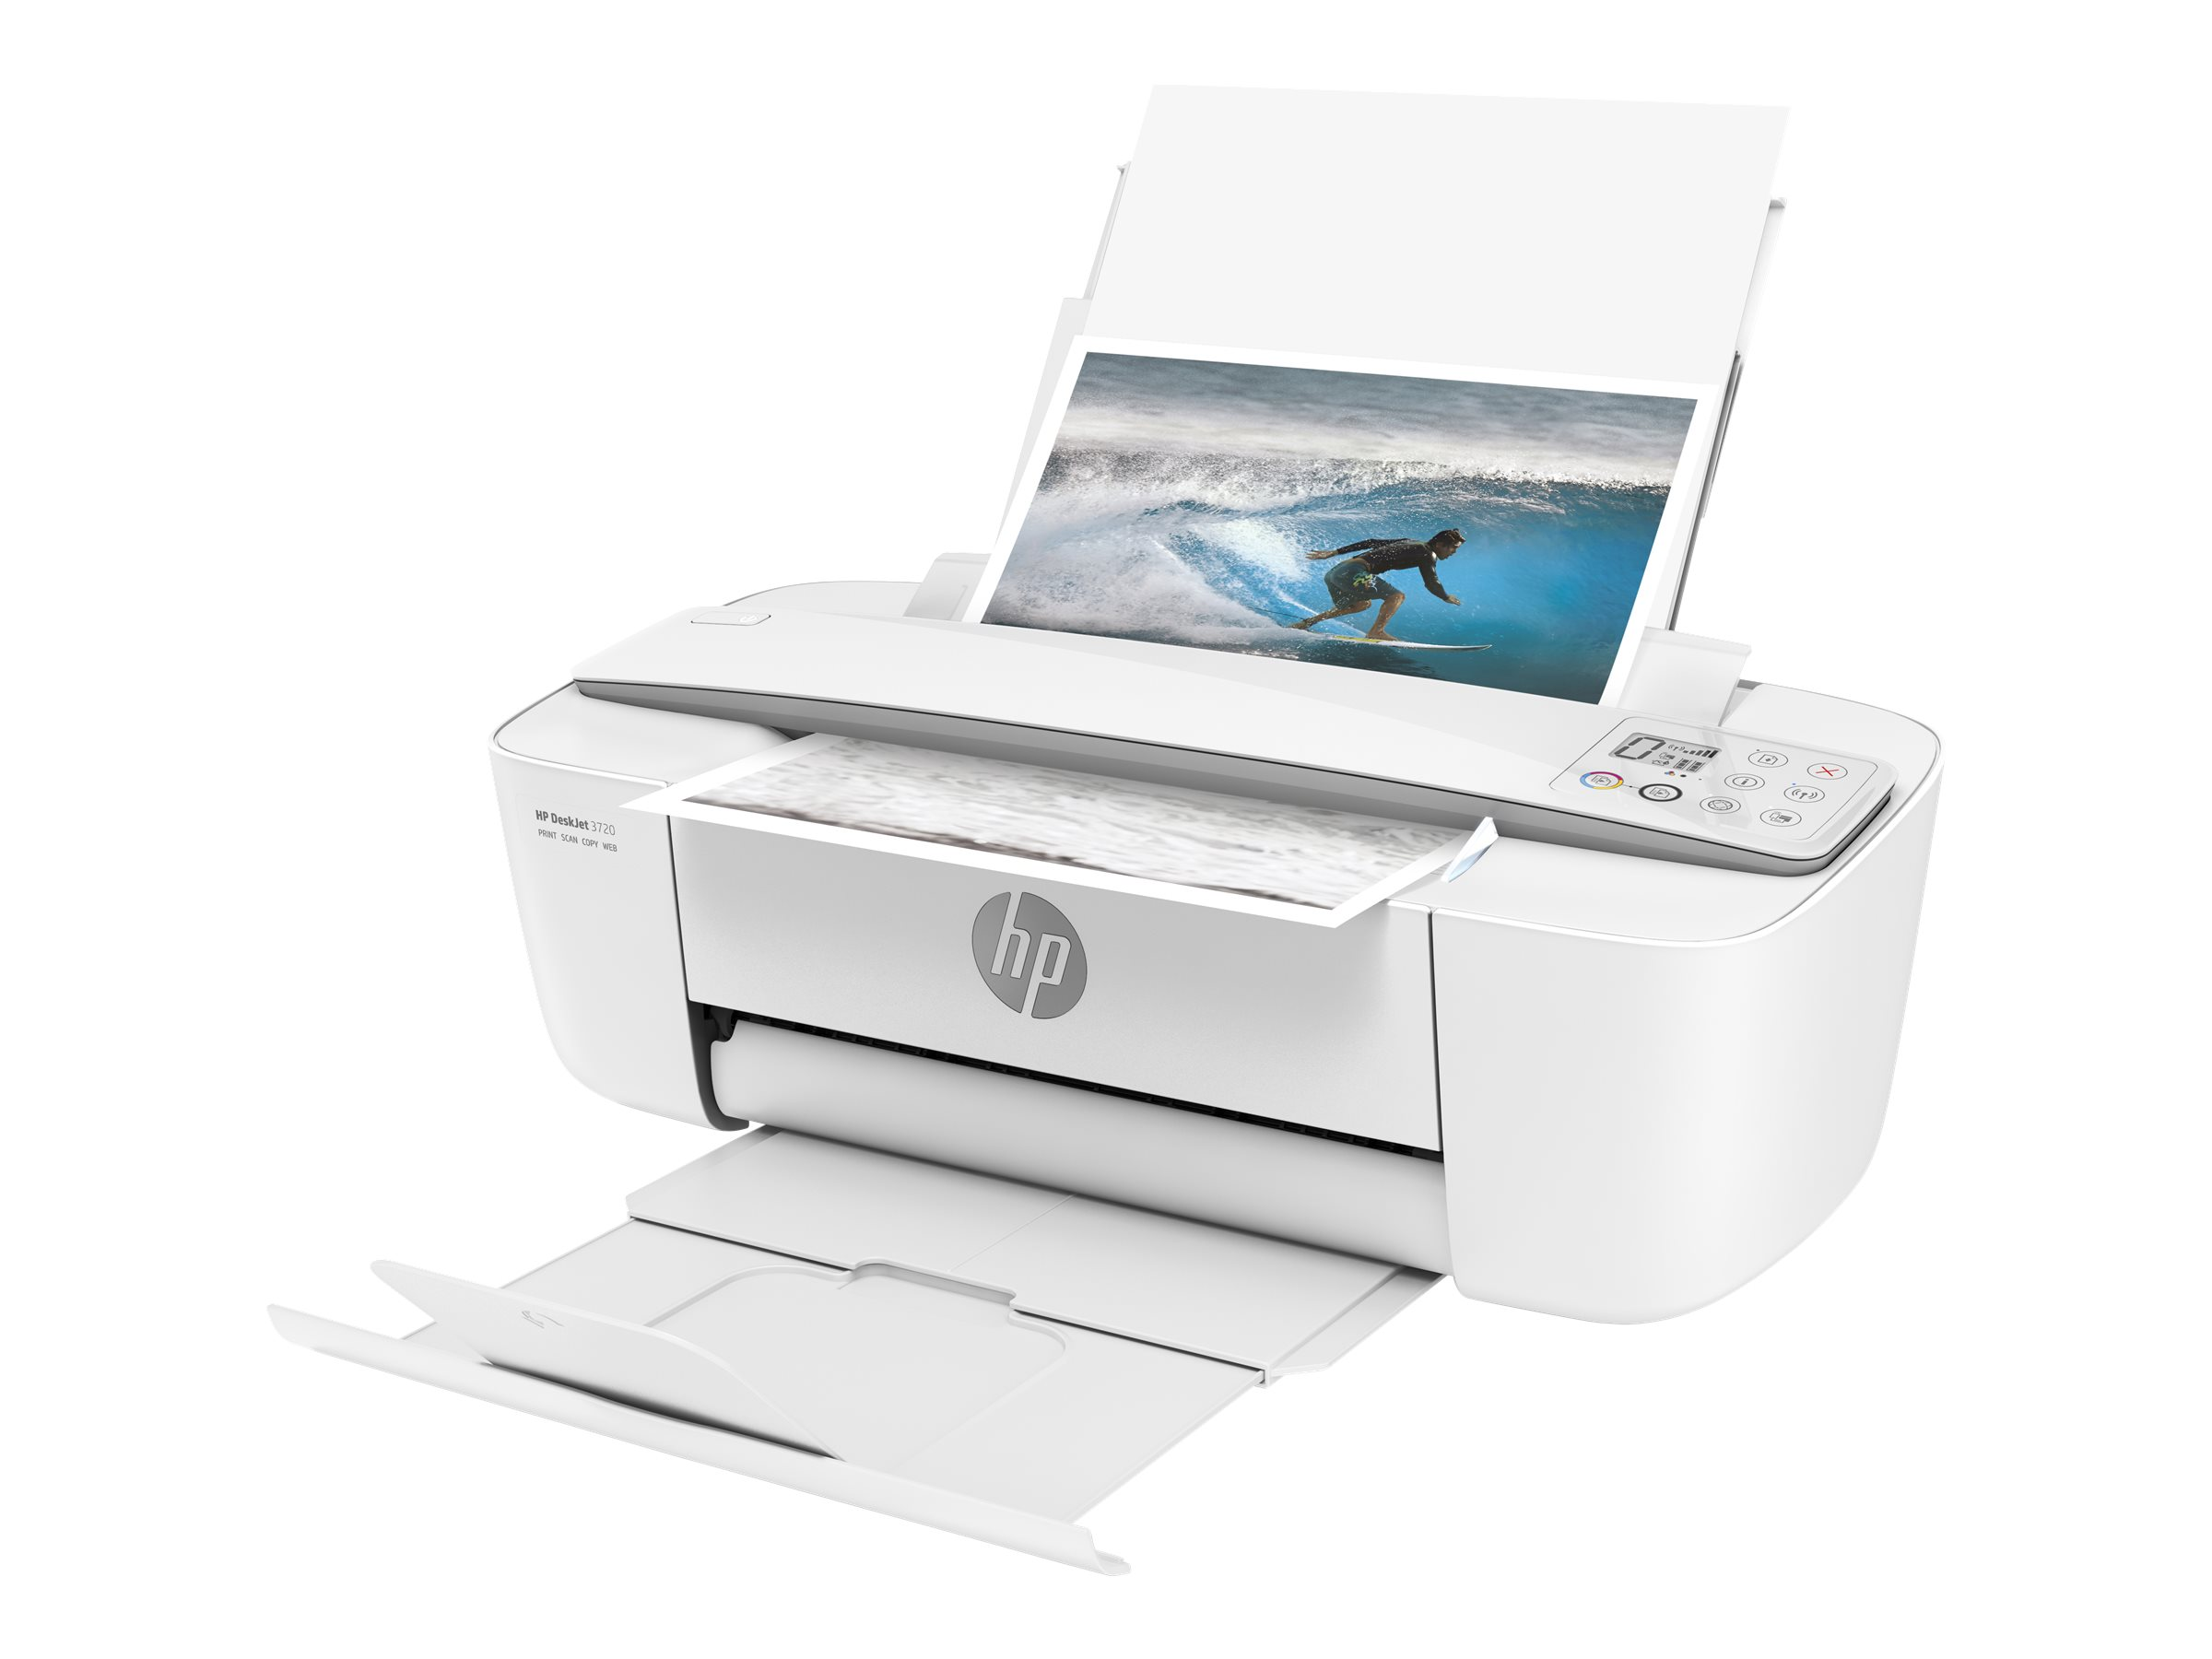 hp deskjet 3720 all in one imprimante multifonctions couleur jet d 39 encre imprimantes jet. Black Bedroom Furniture Sets. Home Design Ideas